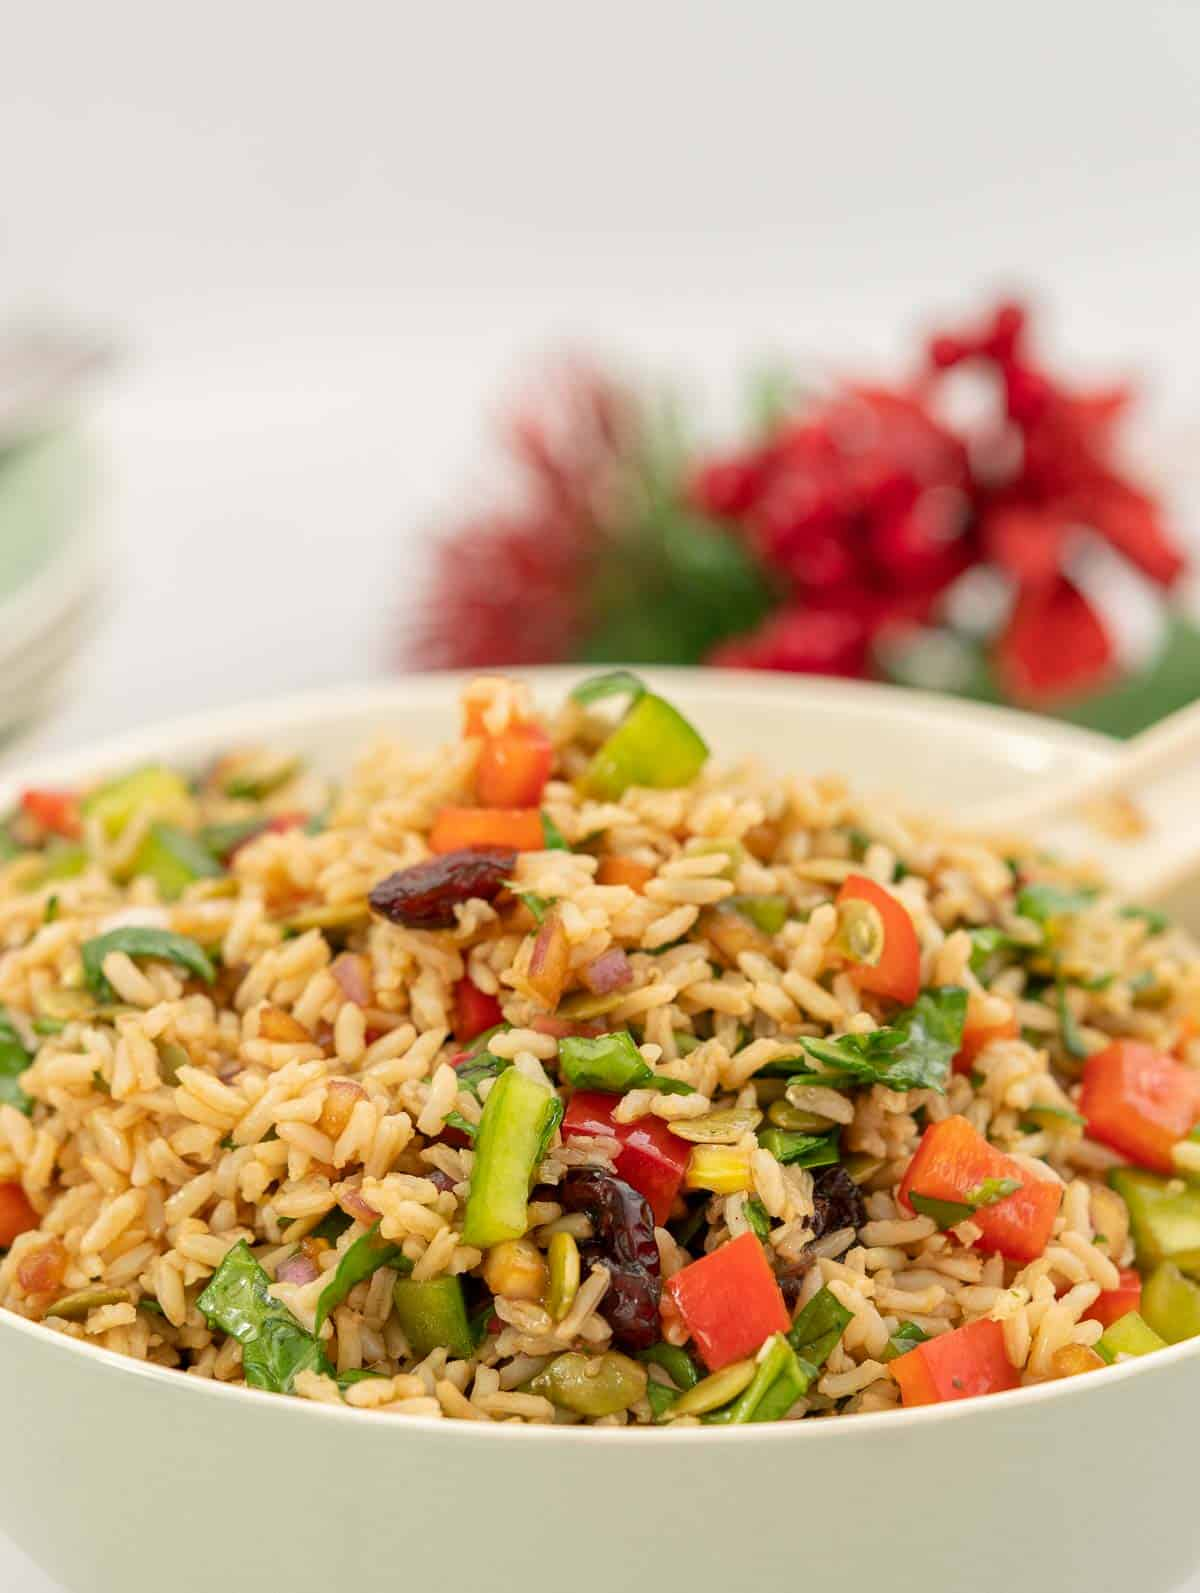 Close up of brown rice salad with red and green ingredients visible